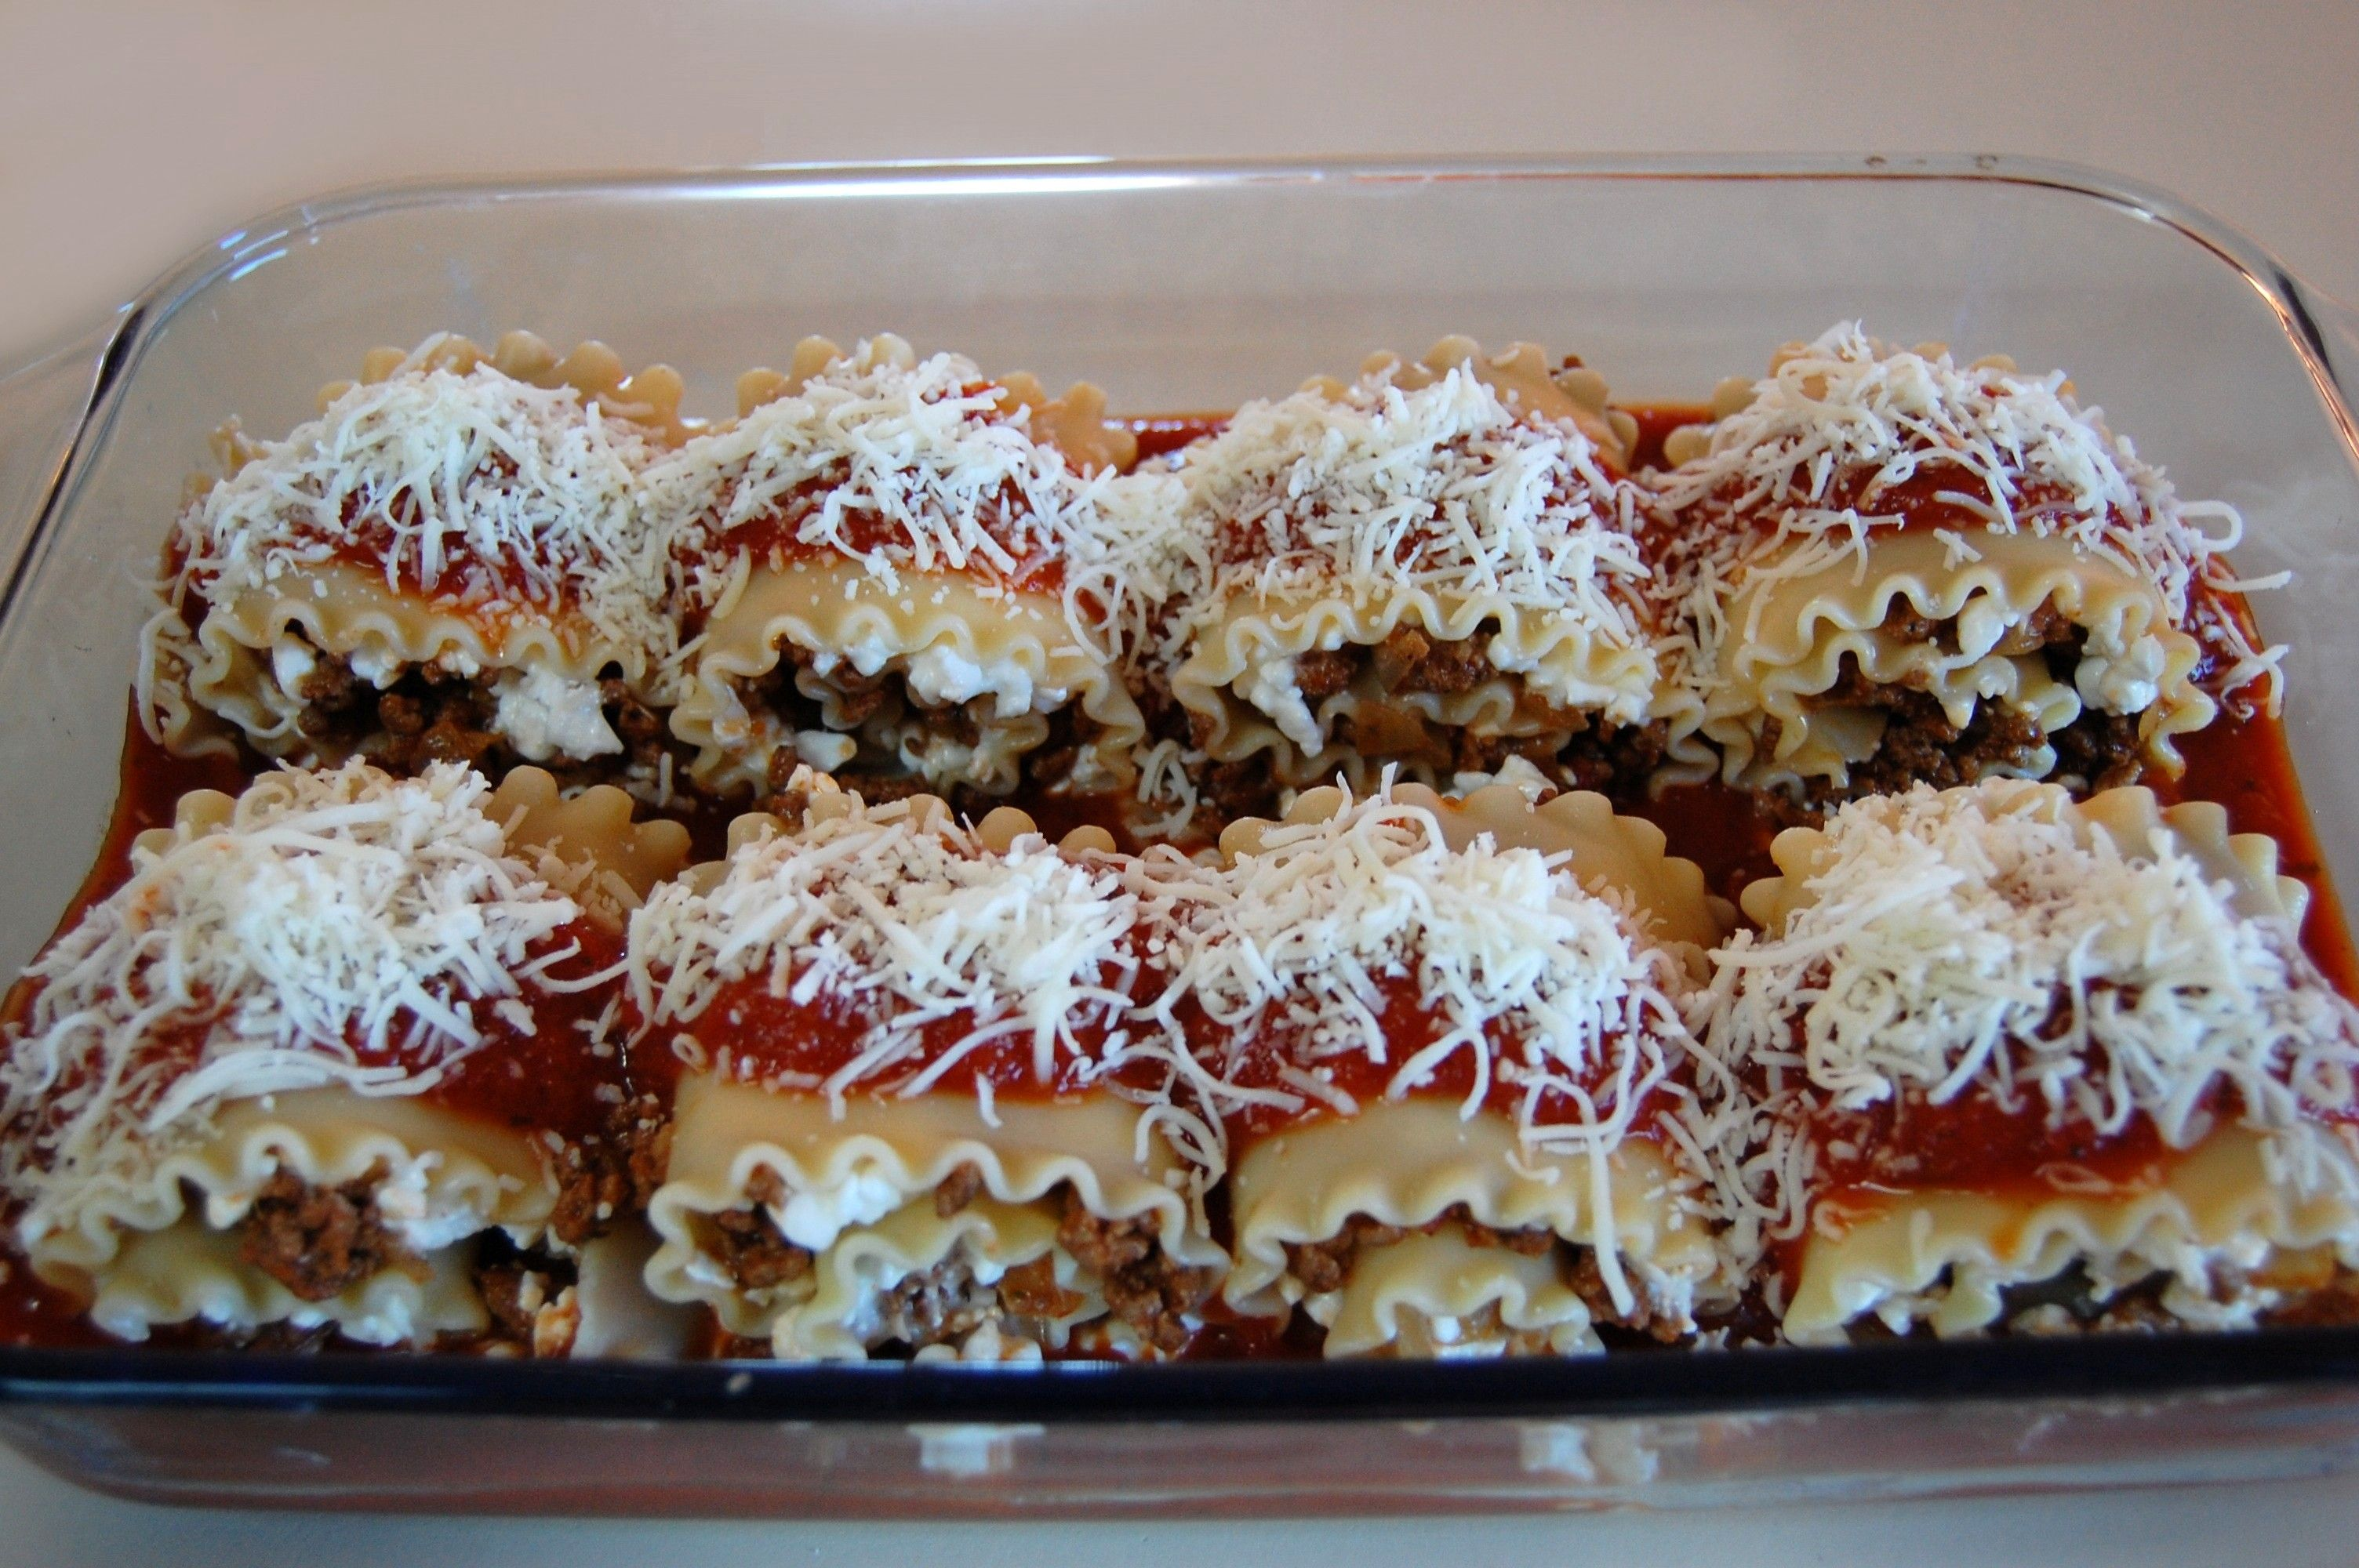 Ground Beef And Spinach Lasagna Rollups Recipe Food Com Recipe Lasagna Rollups Recipes Ground Beef And Spinach